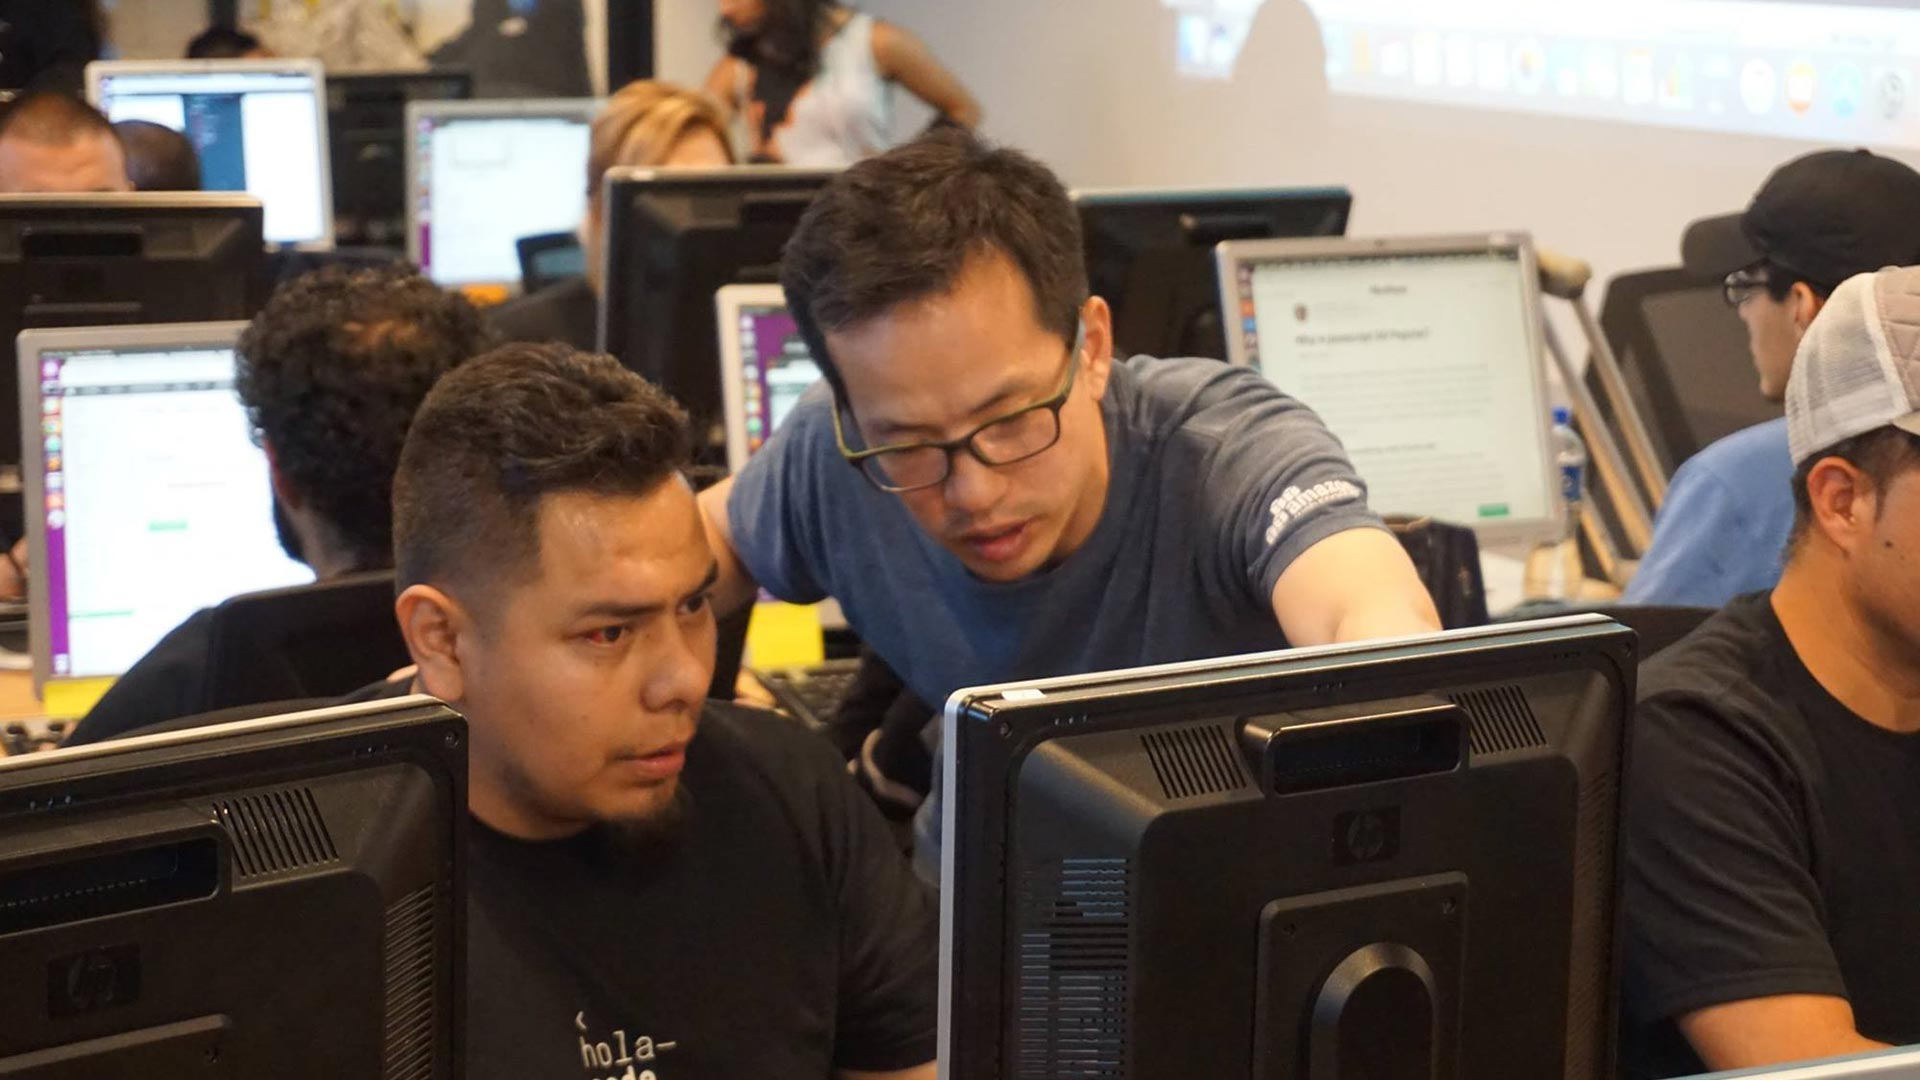 Hola Code teacher and student working